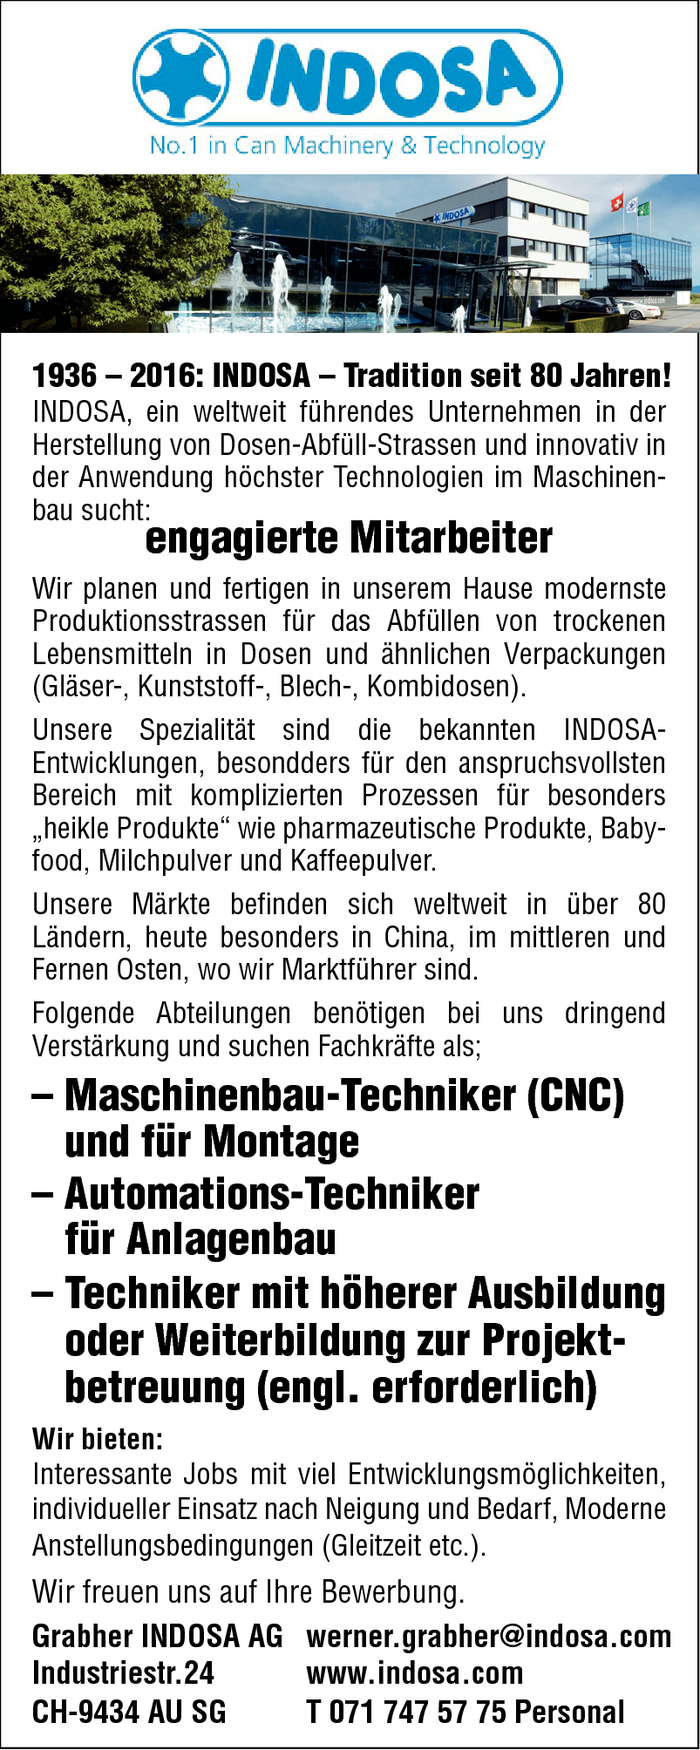 Maschinenbau-Techniker/in, Automations-Techniker/in, Techniker/in Projektbetreuung